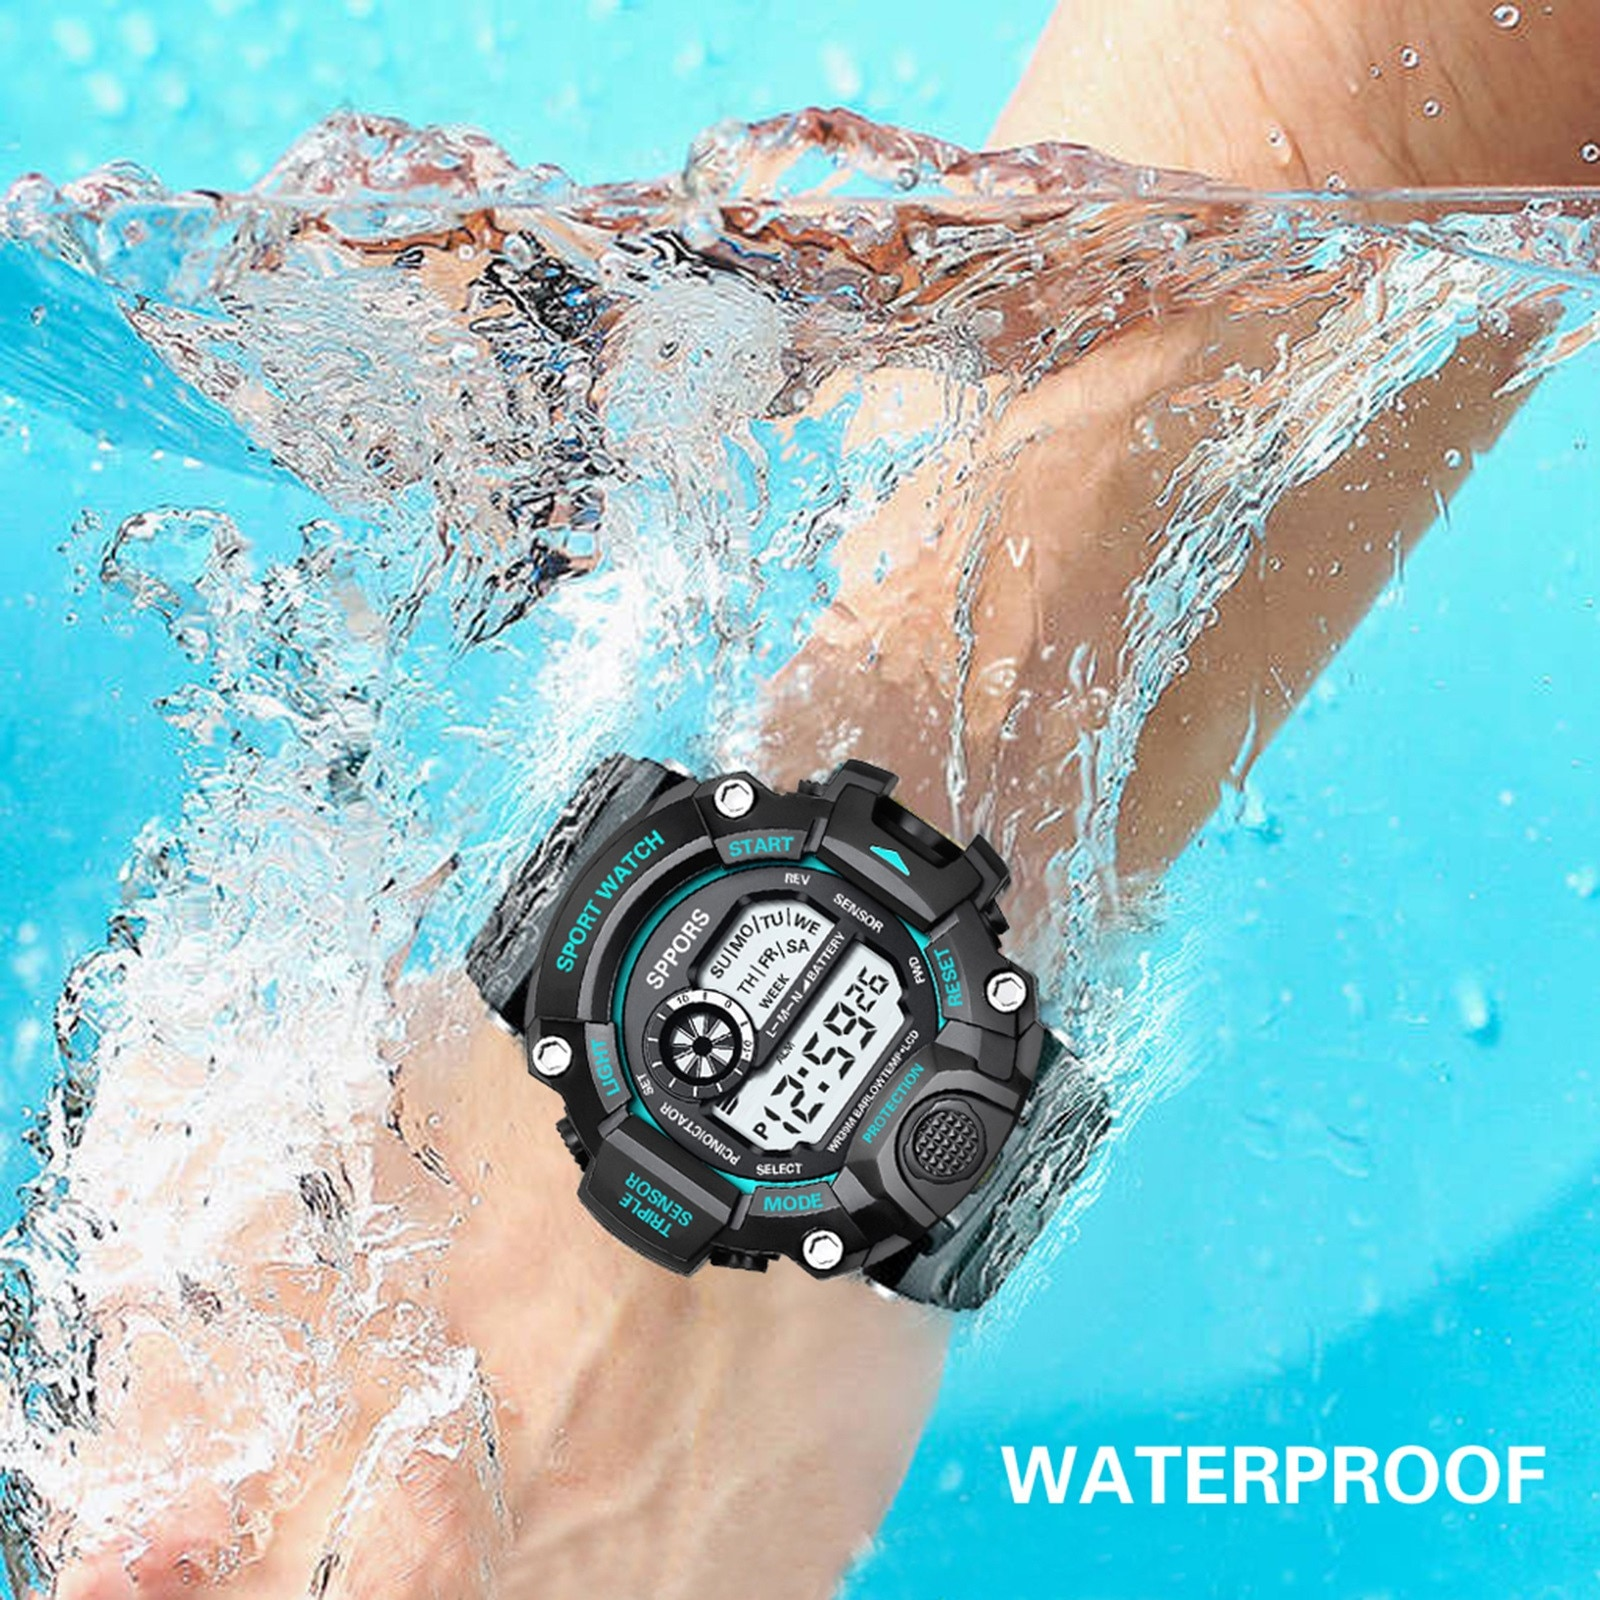 Stopwatch, Alarm Clock, Hourly Reminder, Luminous, Date Display, 12/24 Hour Conv Waterproof Digital